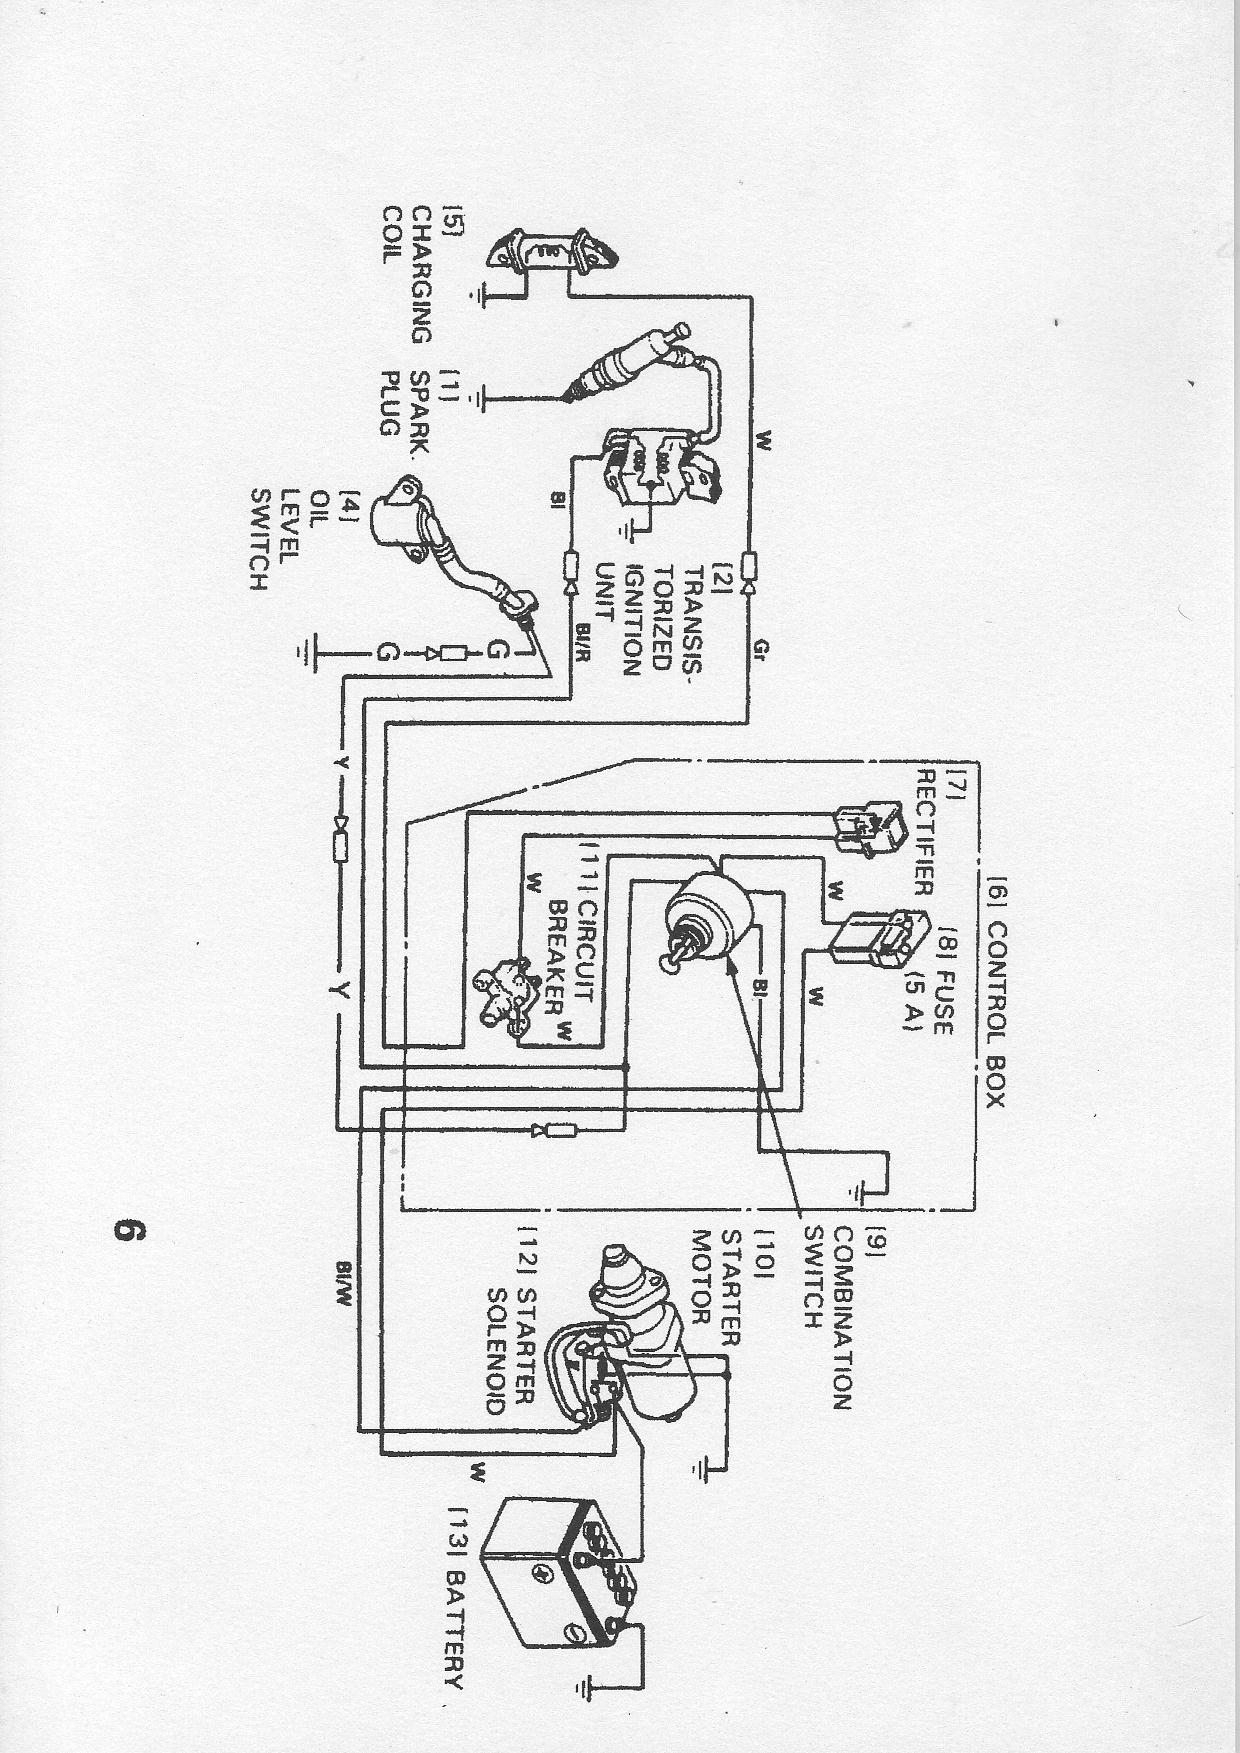 Honda Gx390 Electric Start Wiring Diagram